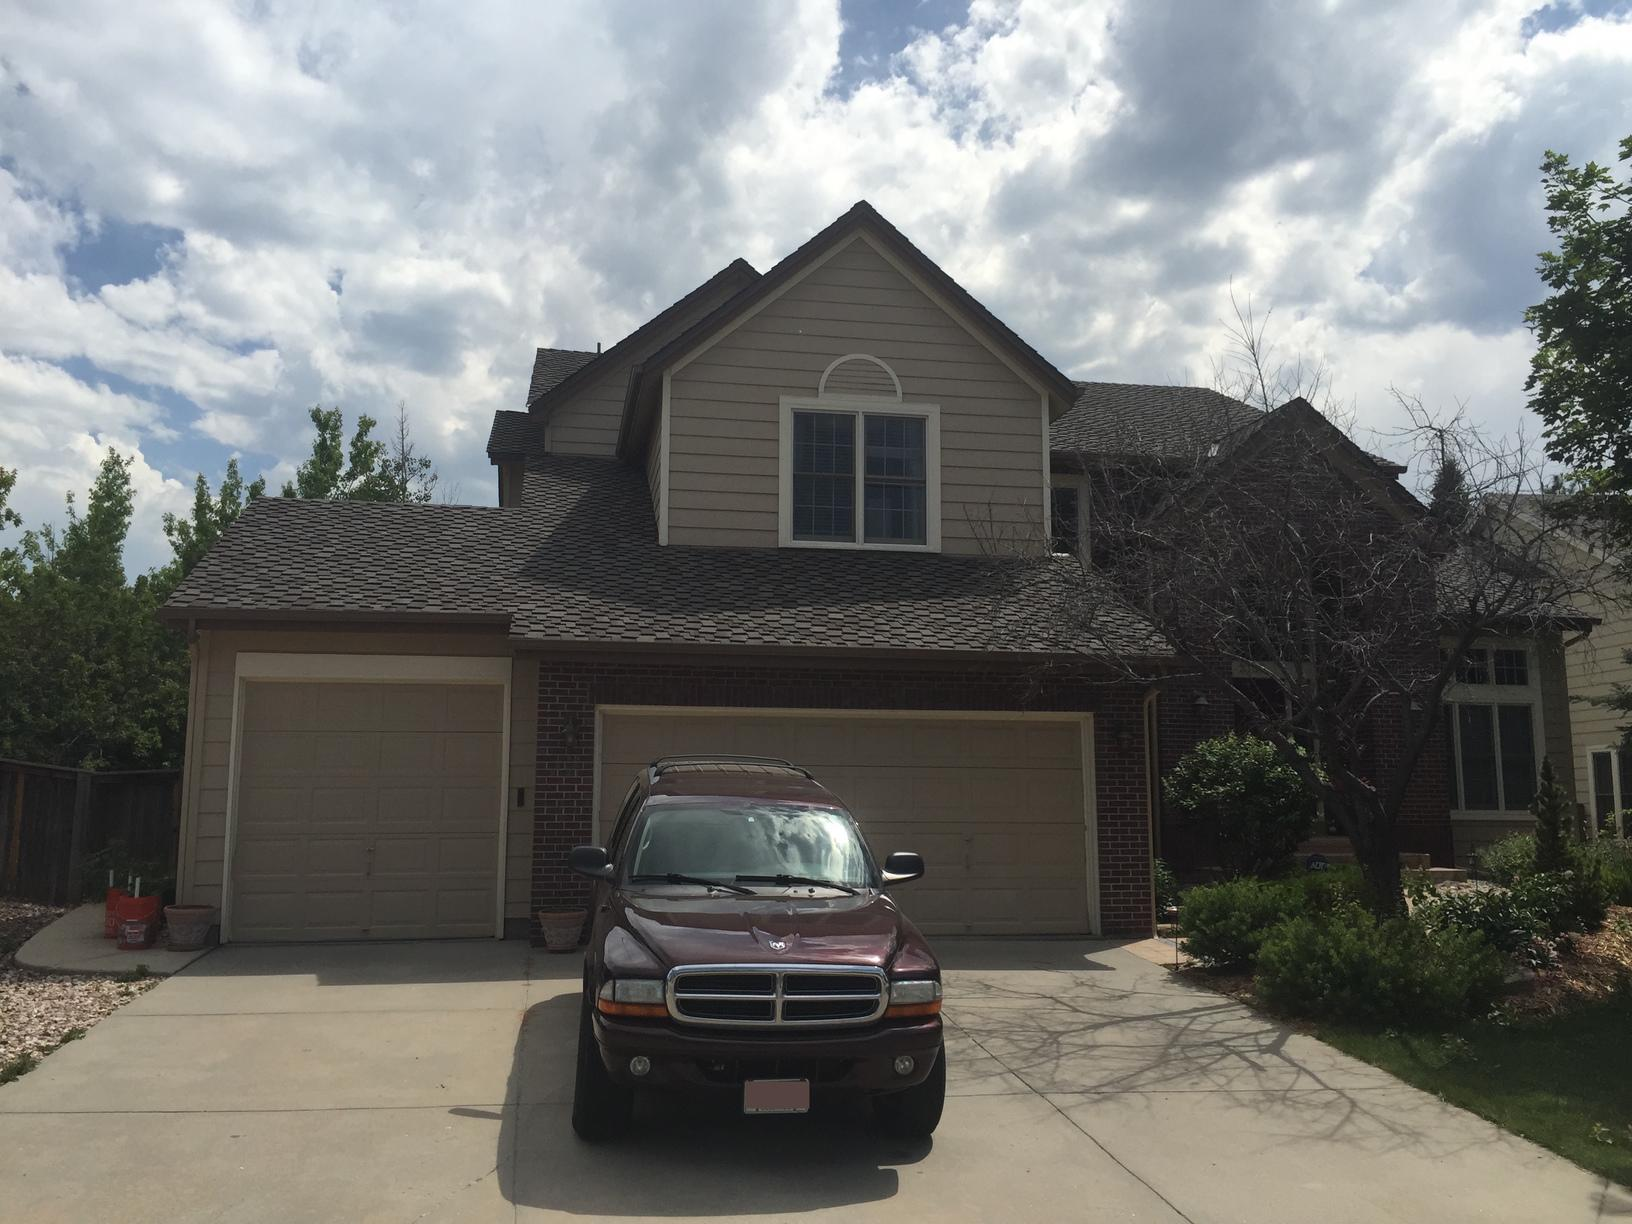 Highlands Ranch Two Story Roof Replacement in Littleton, CO - After Photo